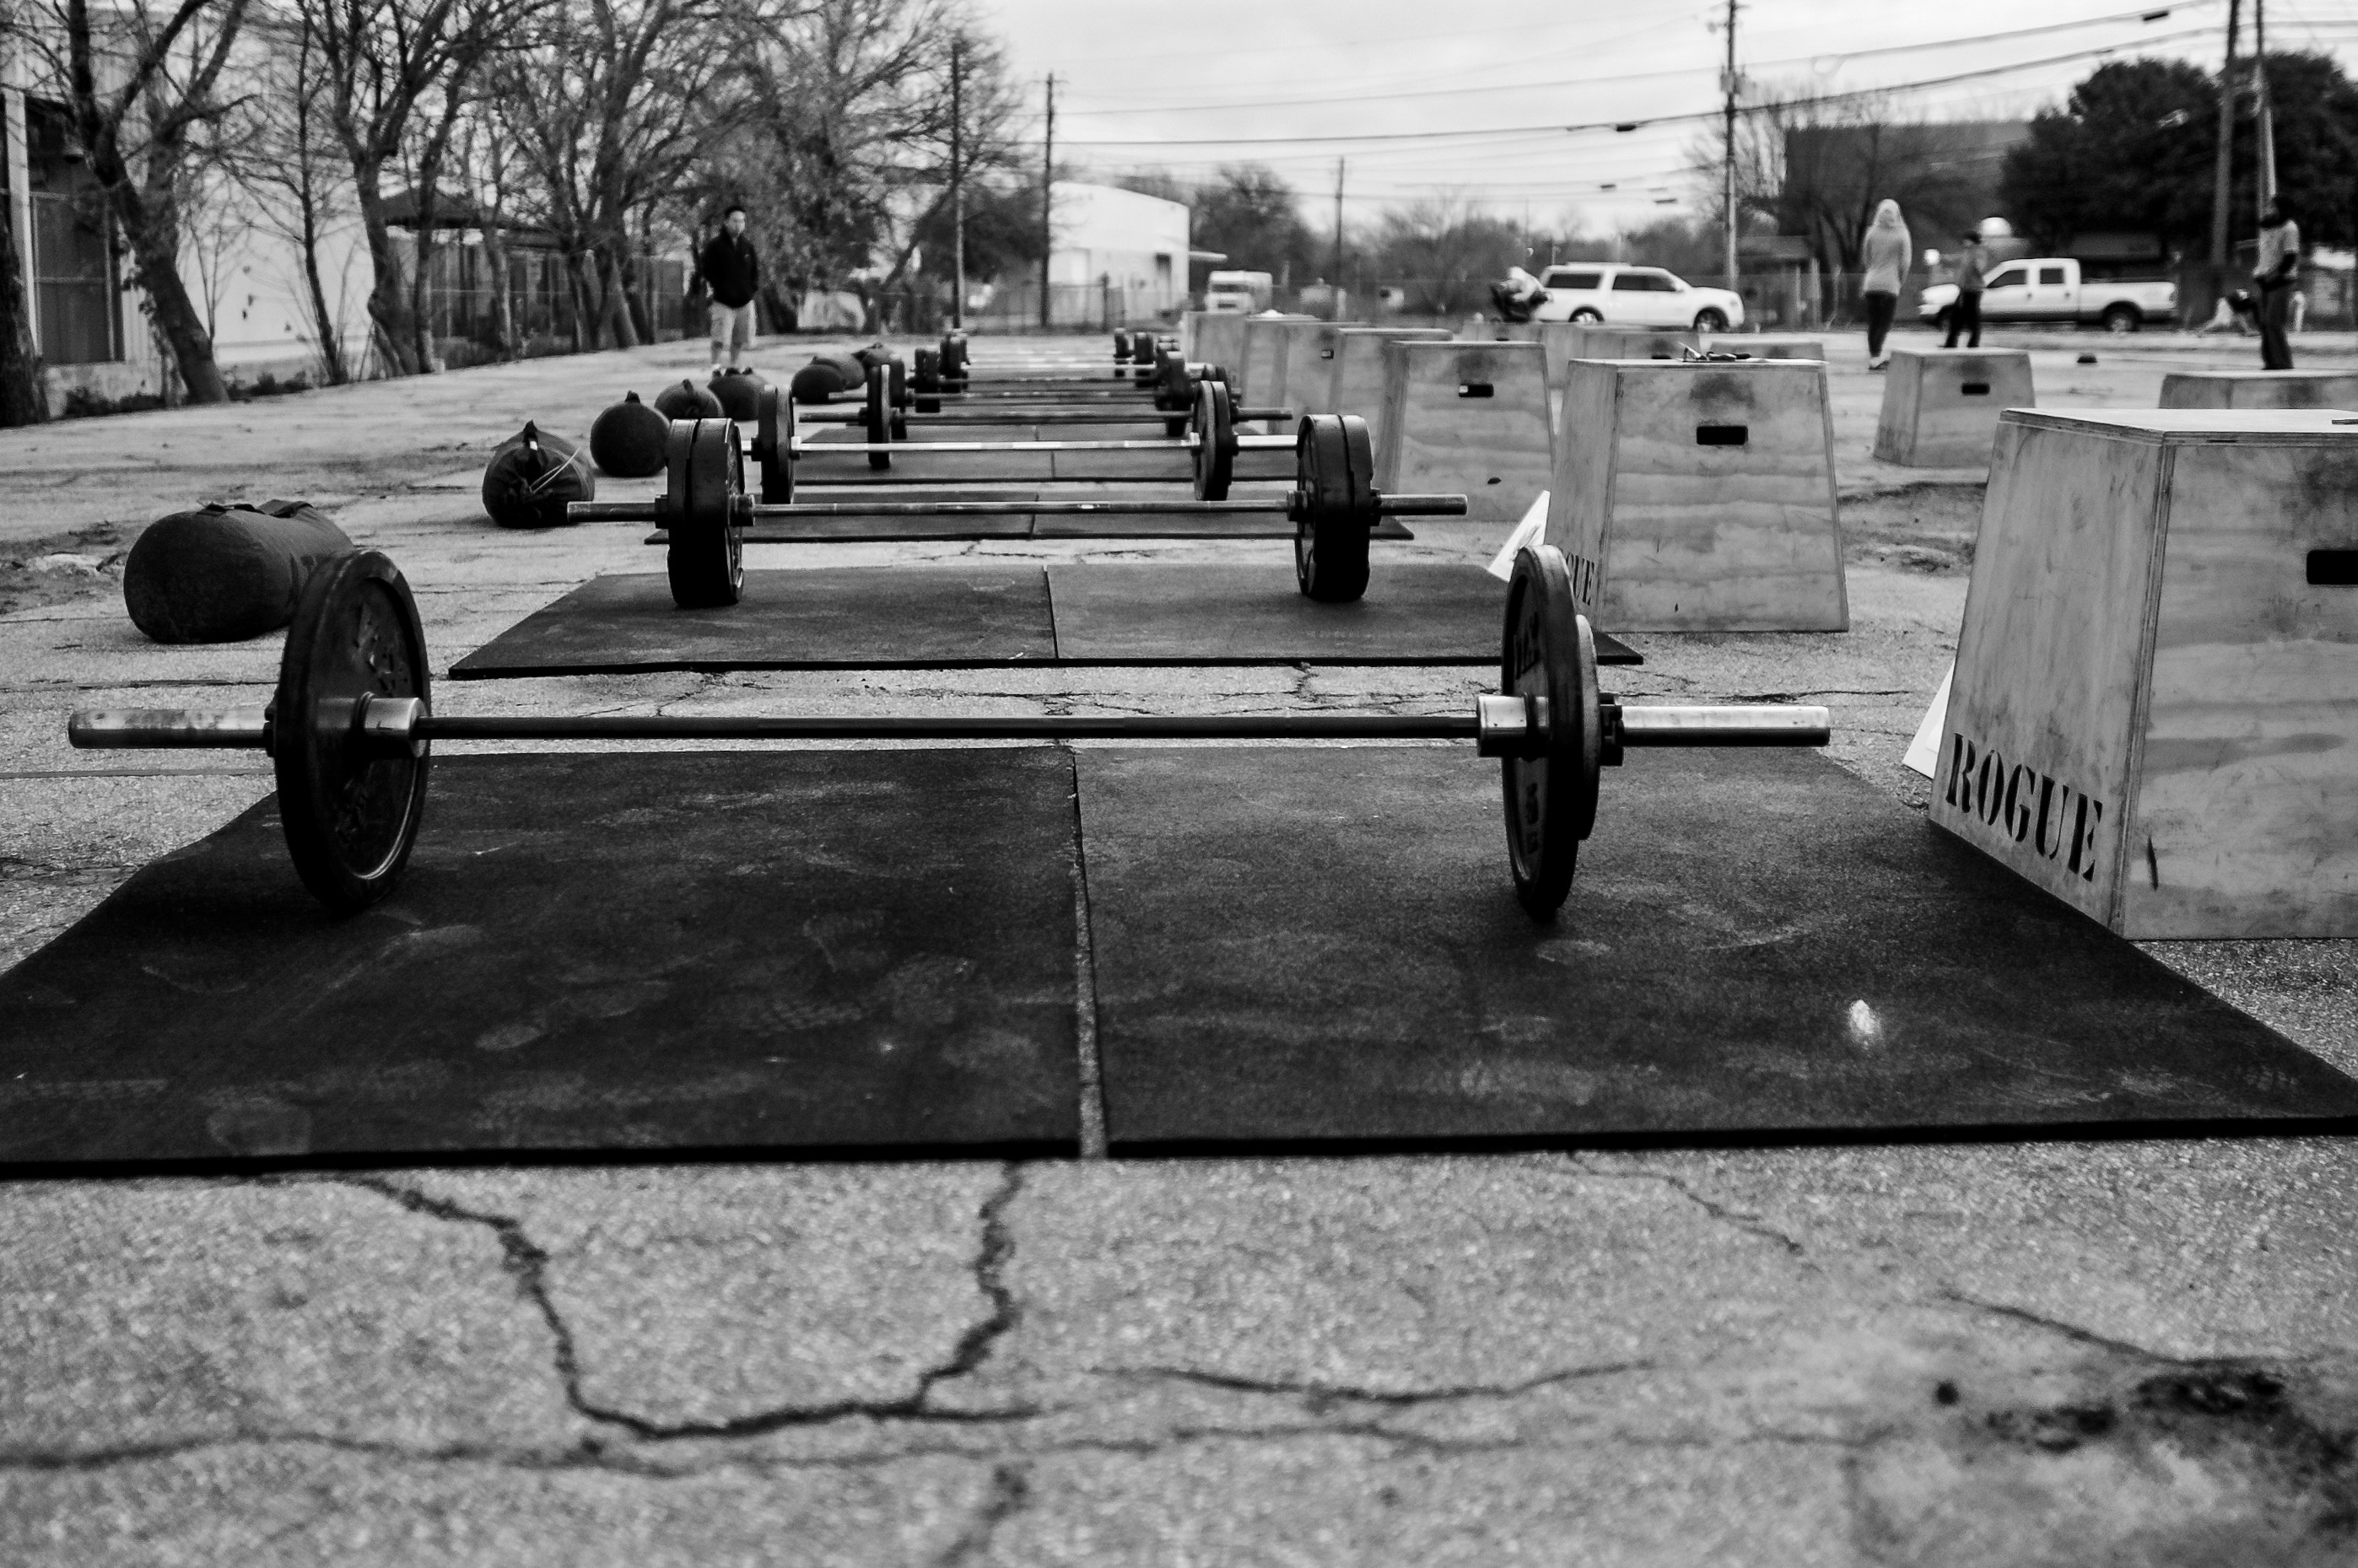 Crossfit Wallpapers 67 images 2795x1859